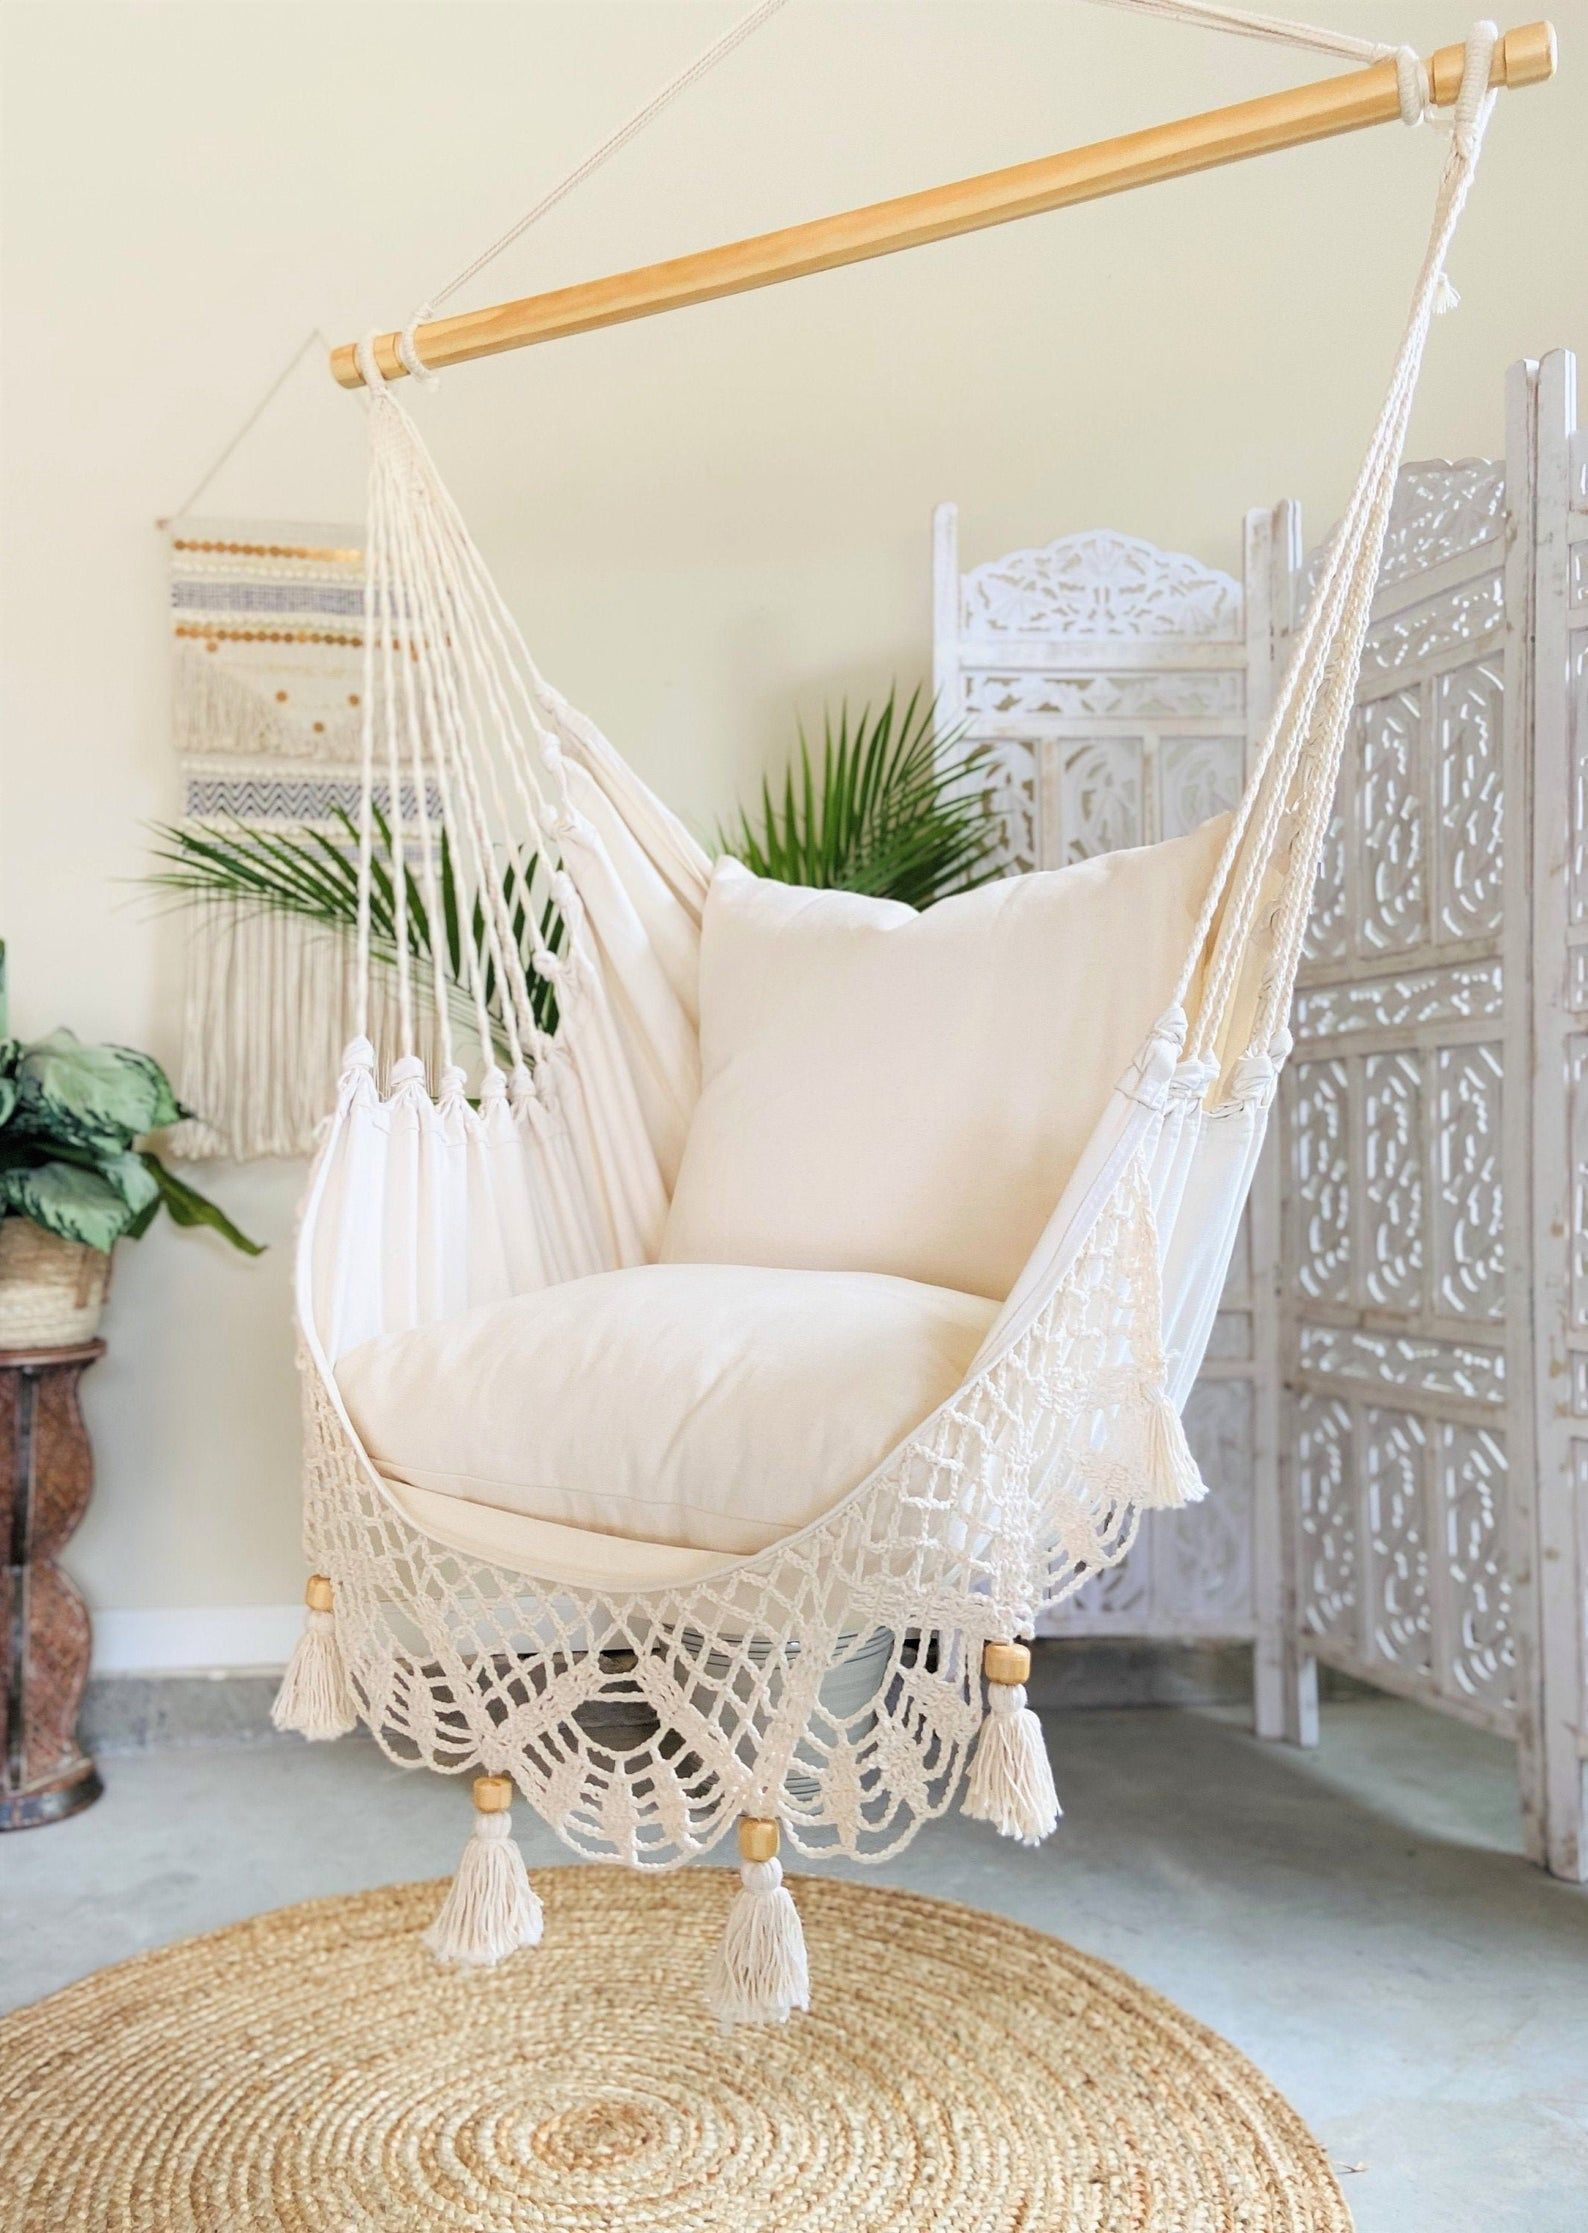 Crochet Hammock Macrame Hammock Chair Boho Hammock Chair Etsy In 2020 Macrame Hammock Chair Hanging Chair Indoor Hammock In Bedroom